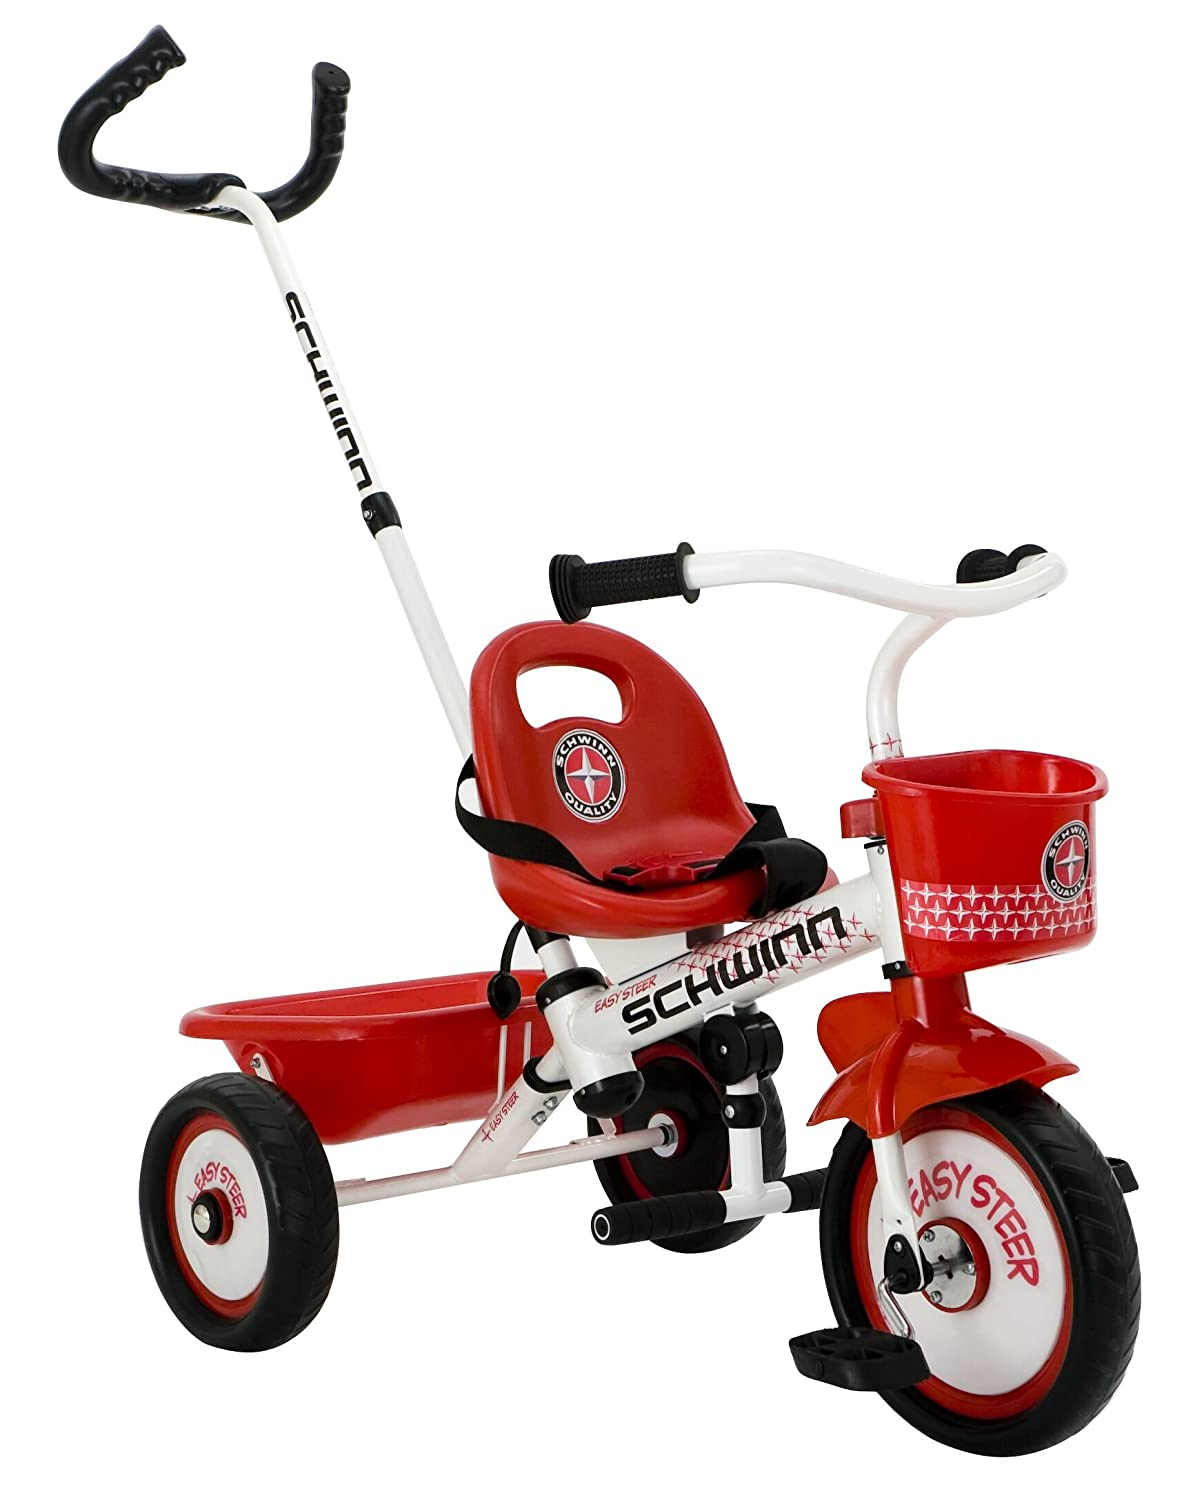 SCHWINN EASY STEER TRICYCLE (Amazon's Choice)